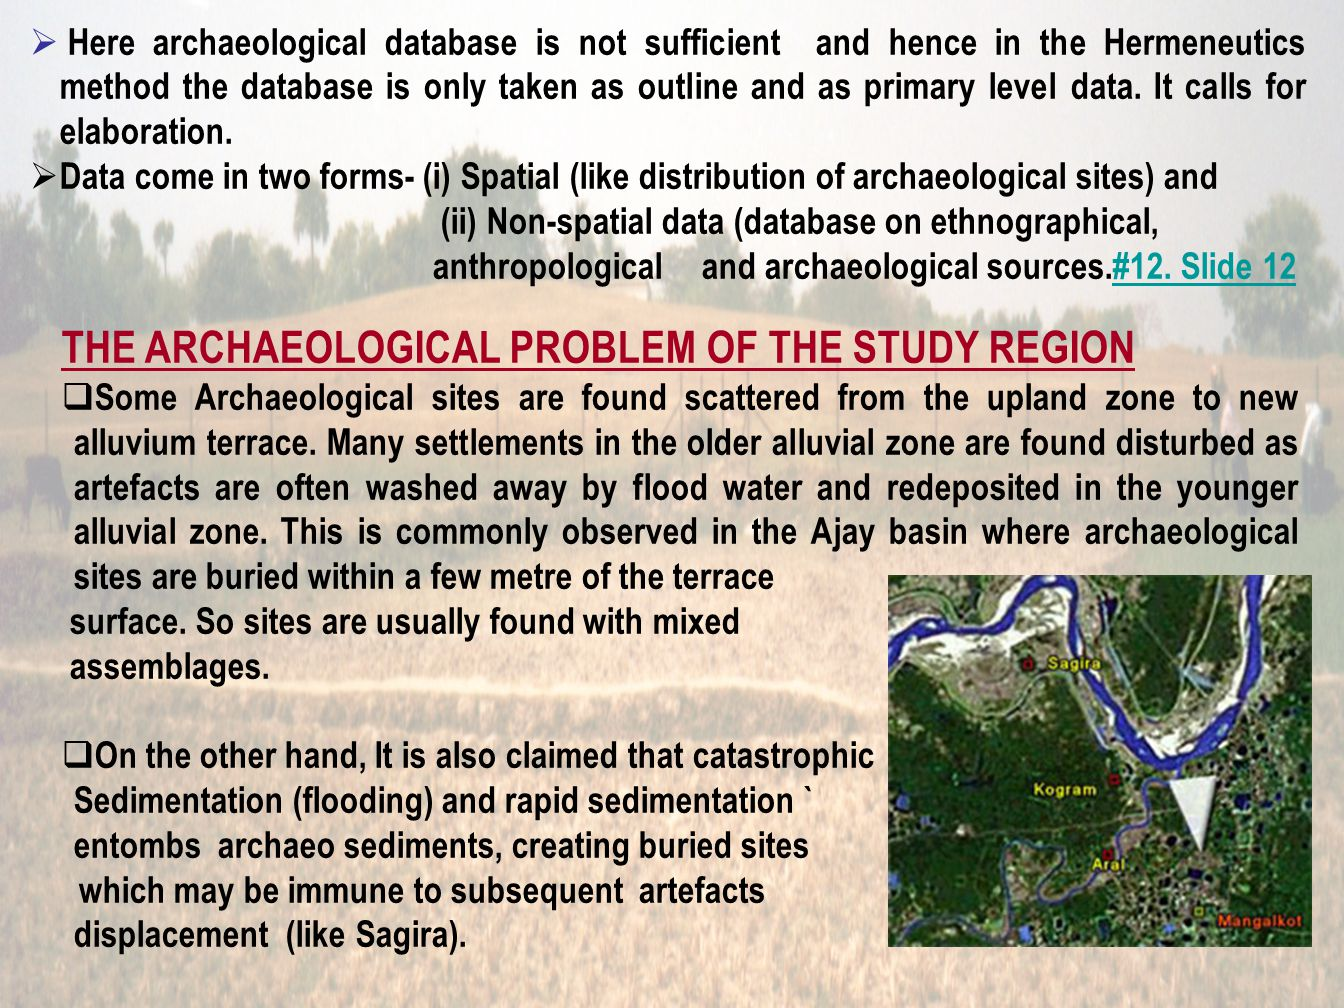 Here archaeological database is not sufficient and hence in the Hermeneutics method the database is only taken as outline and as primary level data.